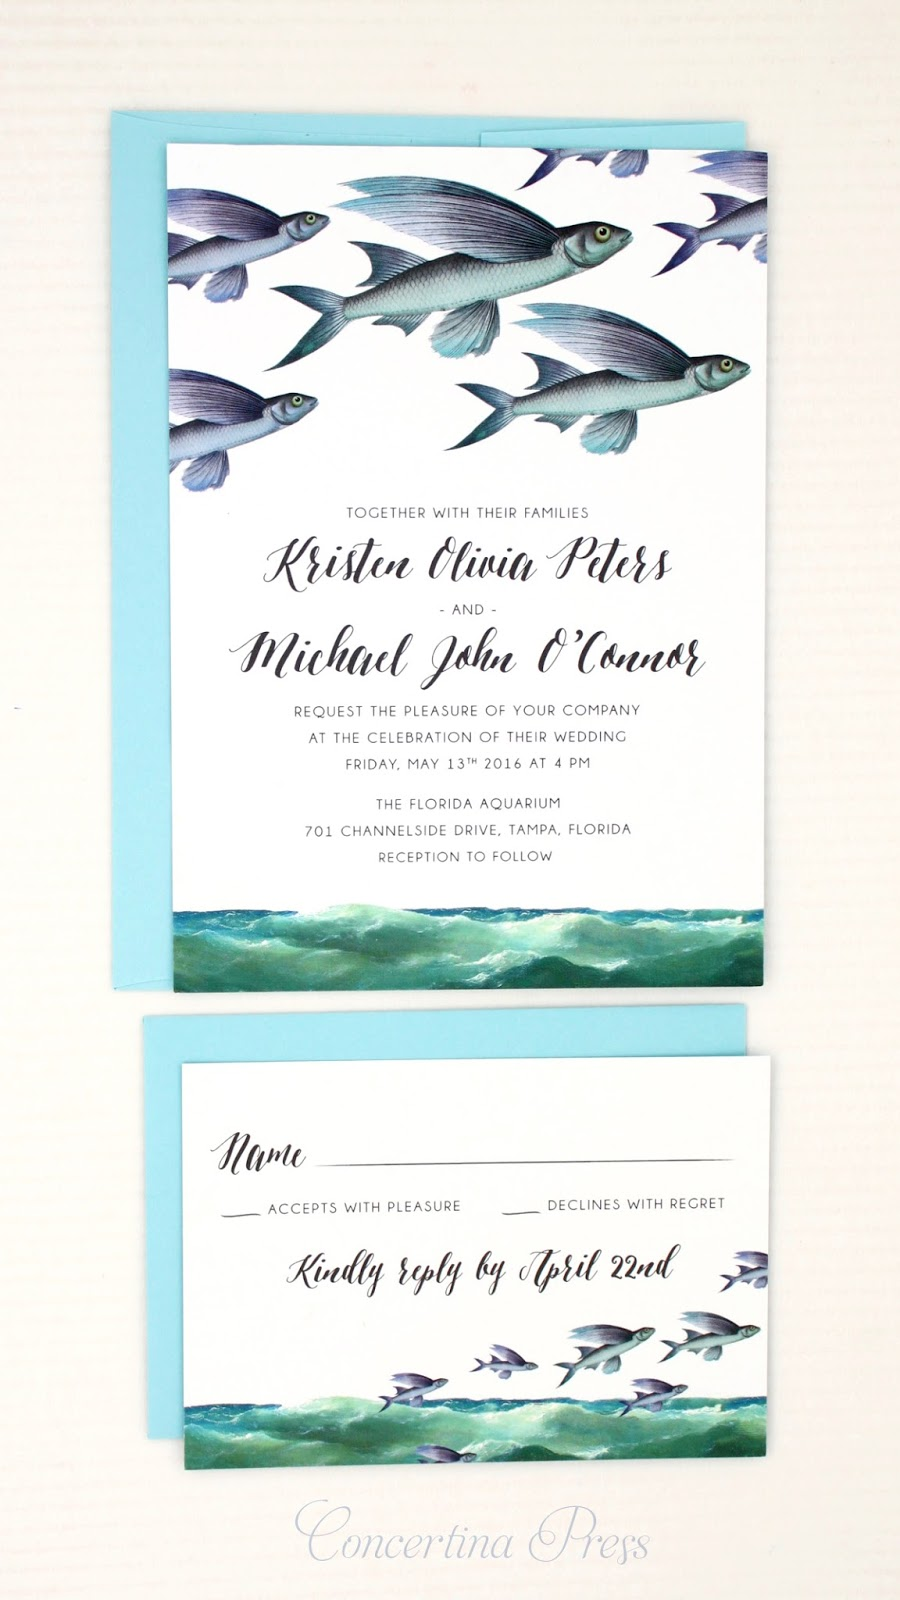 Flying Fish Wedding Invitation and RSVP set from Concertina Press